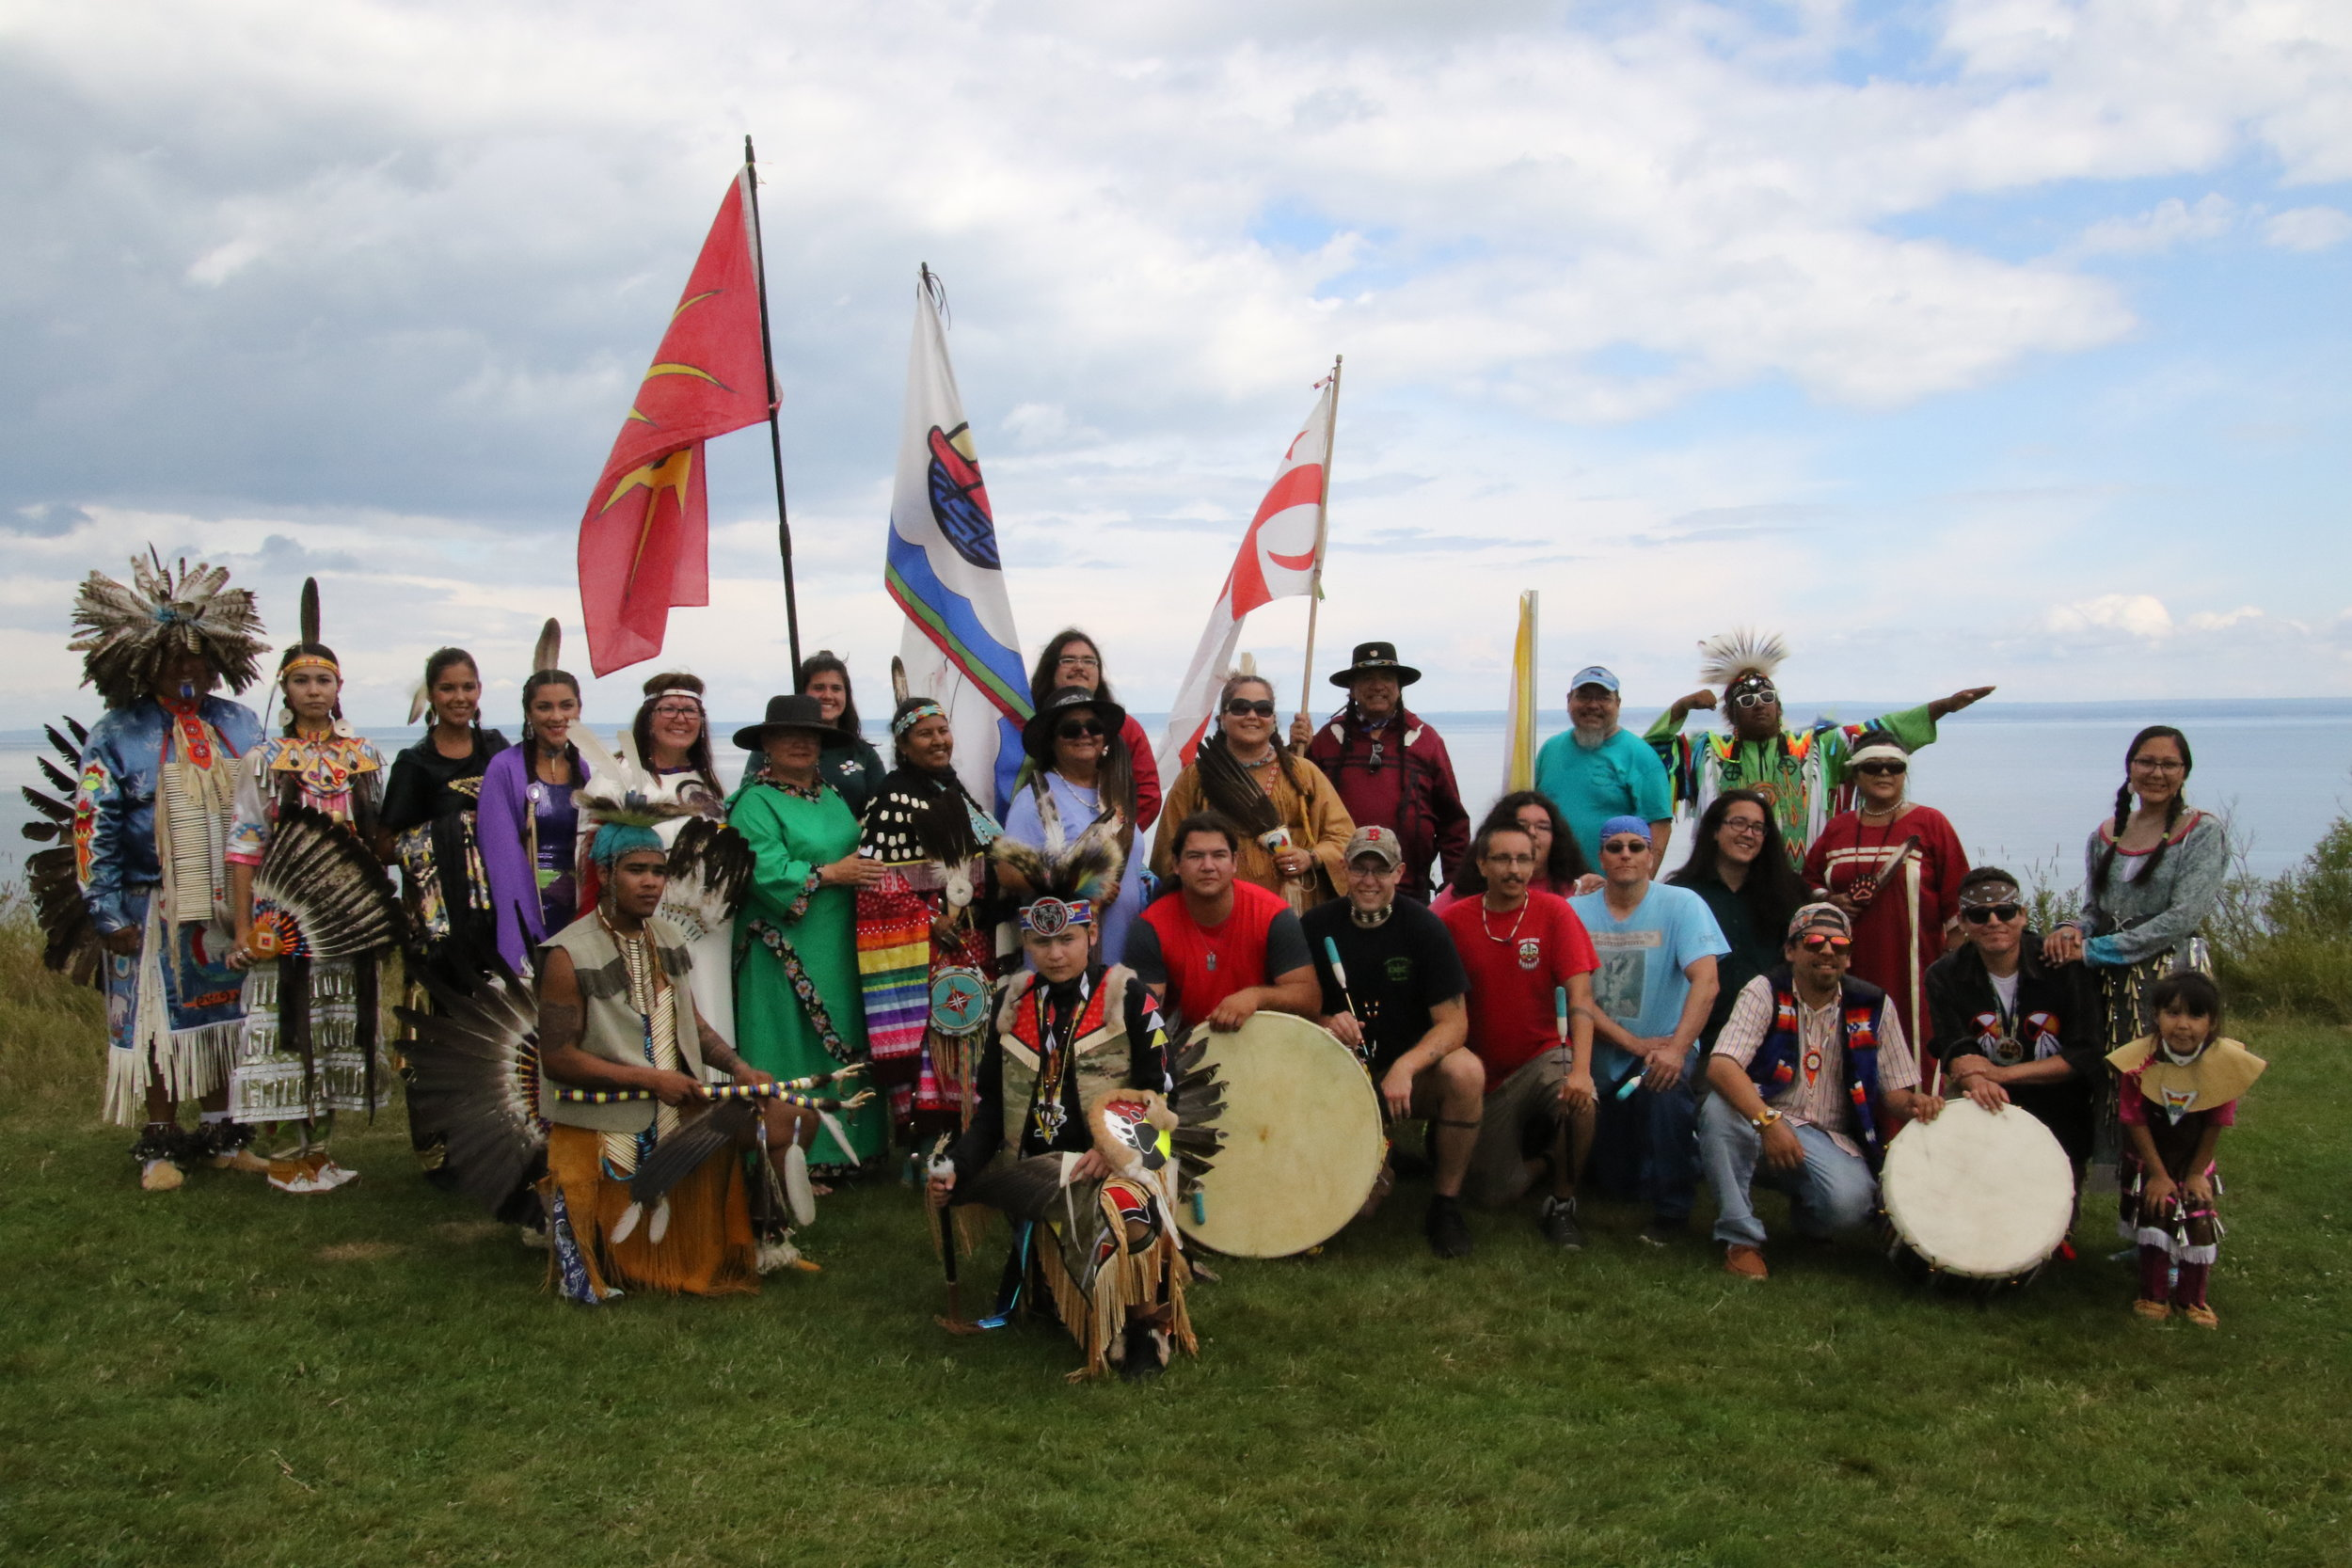 Dancers, drum groups and vendors pose for a group photo during the 2018 All Nations Pow Wow held at Fundy National Park, NB